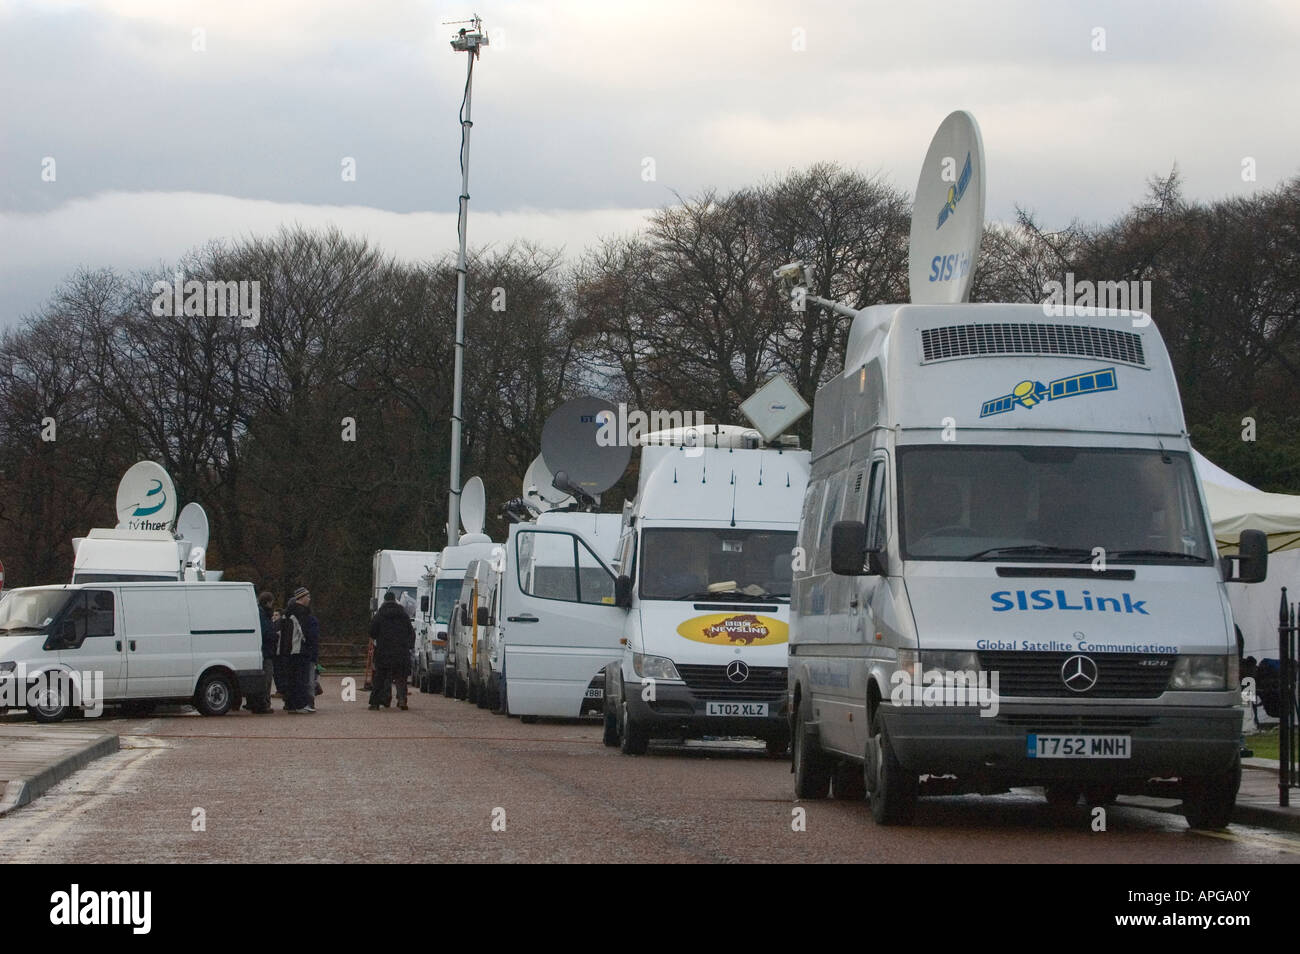 Satellite News Vehicles at a news event in Northern Ireland Stock Photo